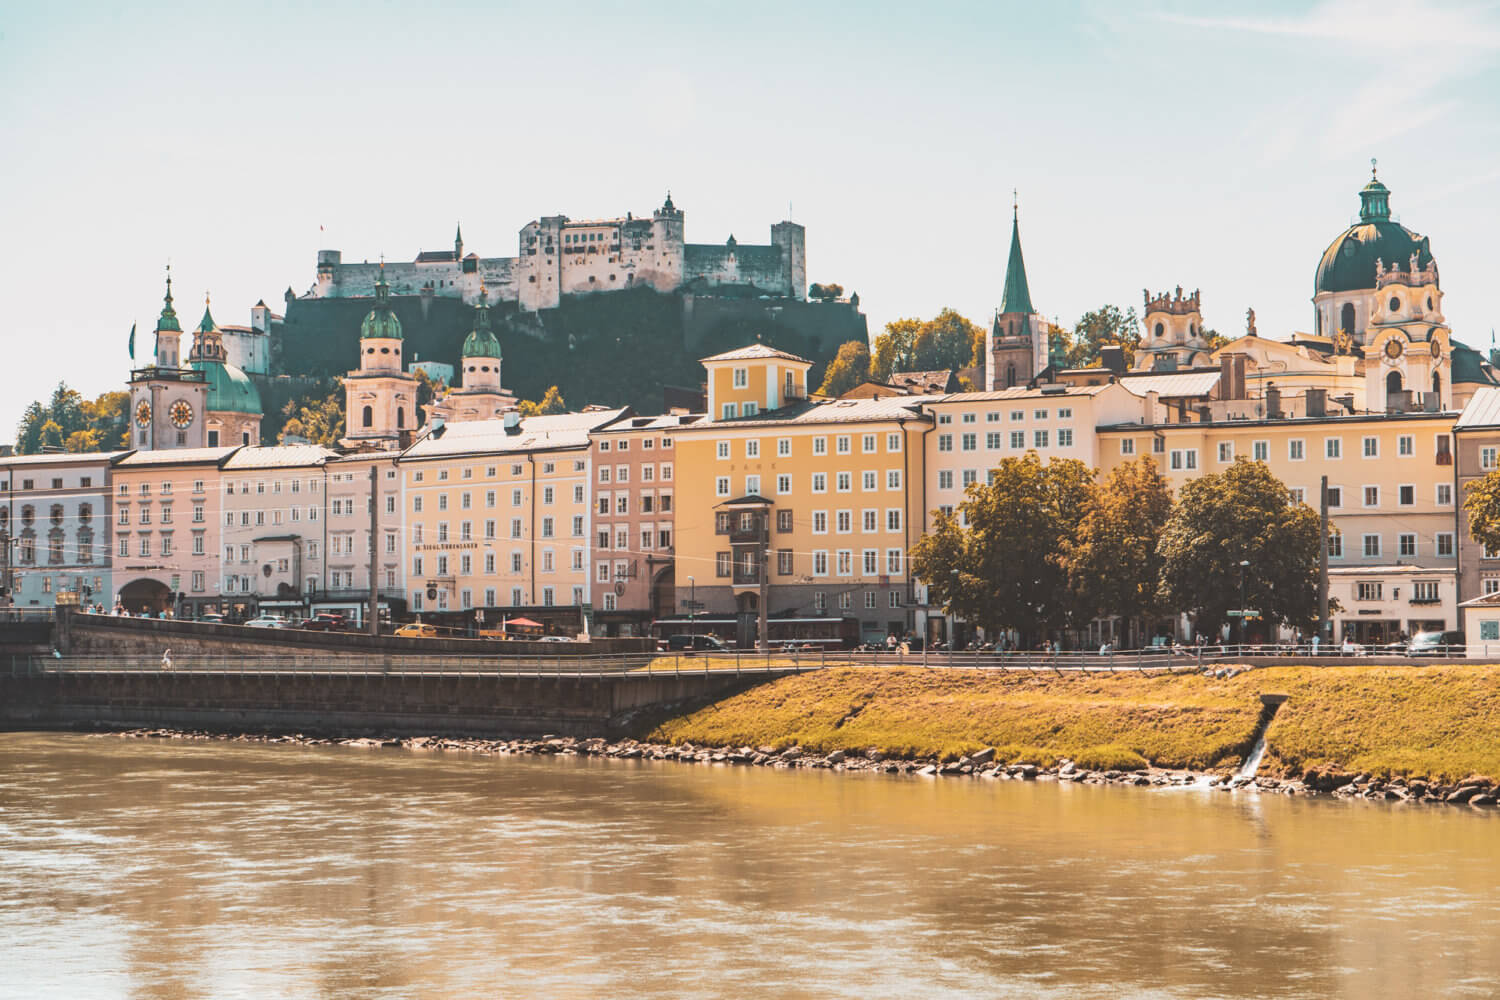 View of Salzburg from the Salzach River